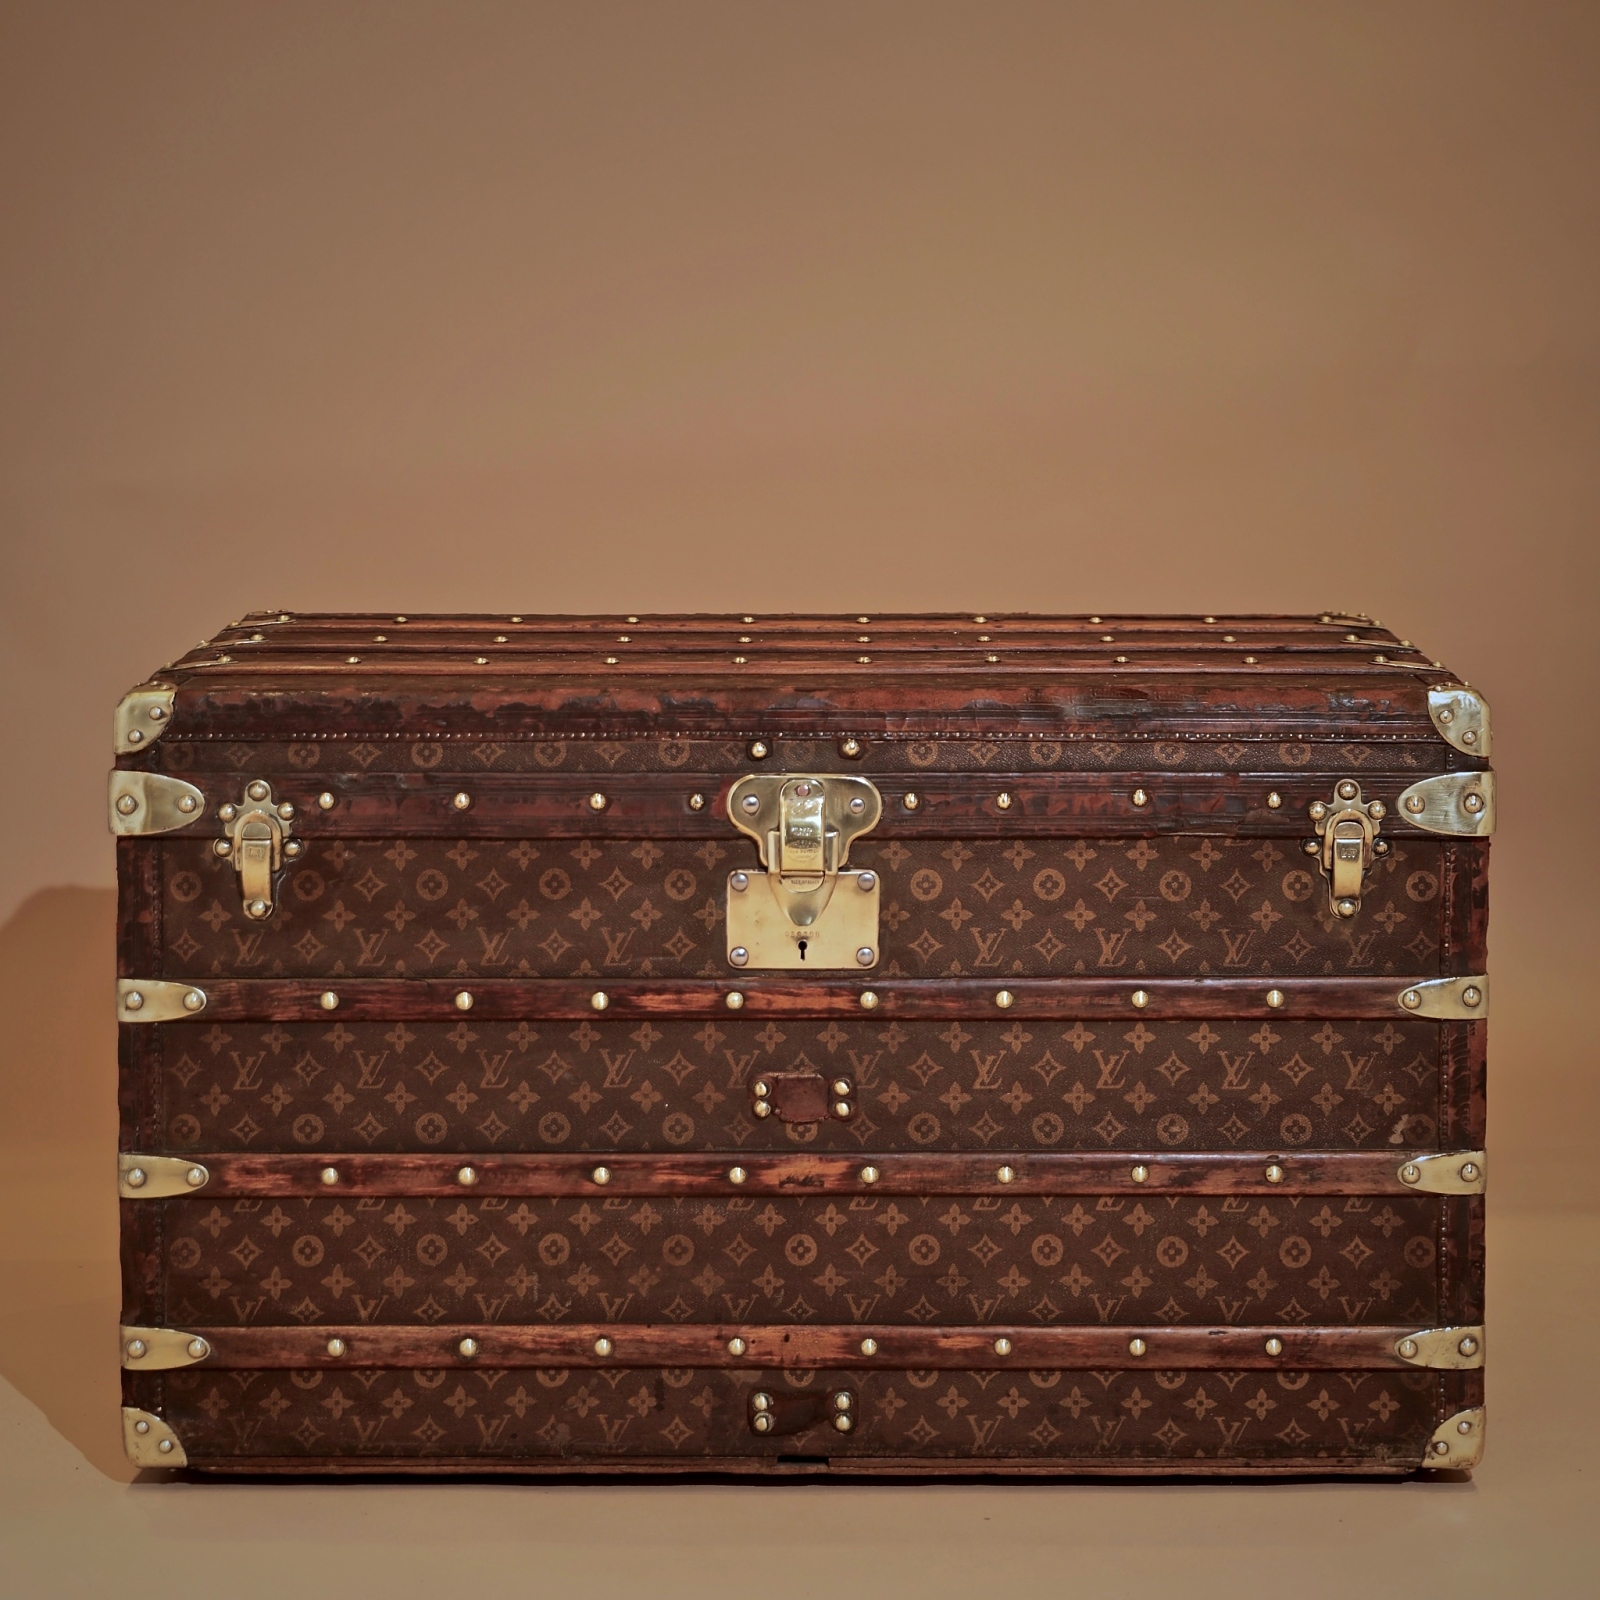 the-well-traveled-trunk-louis-vuitton-thumbnail-product-5710